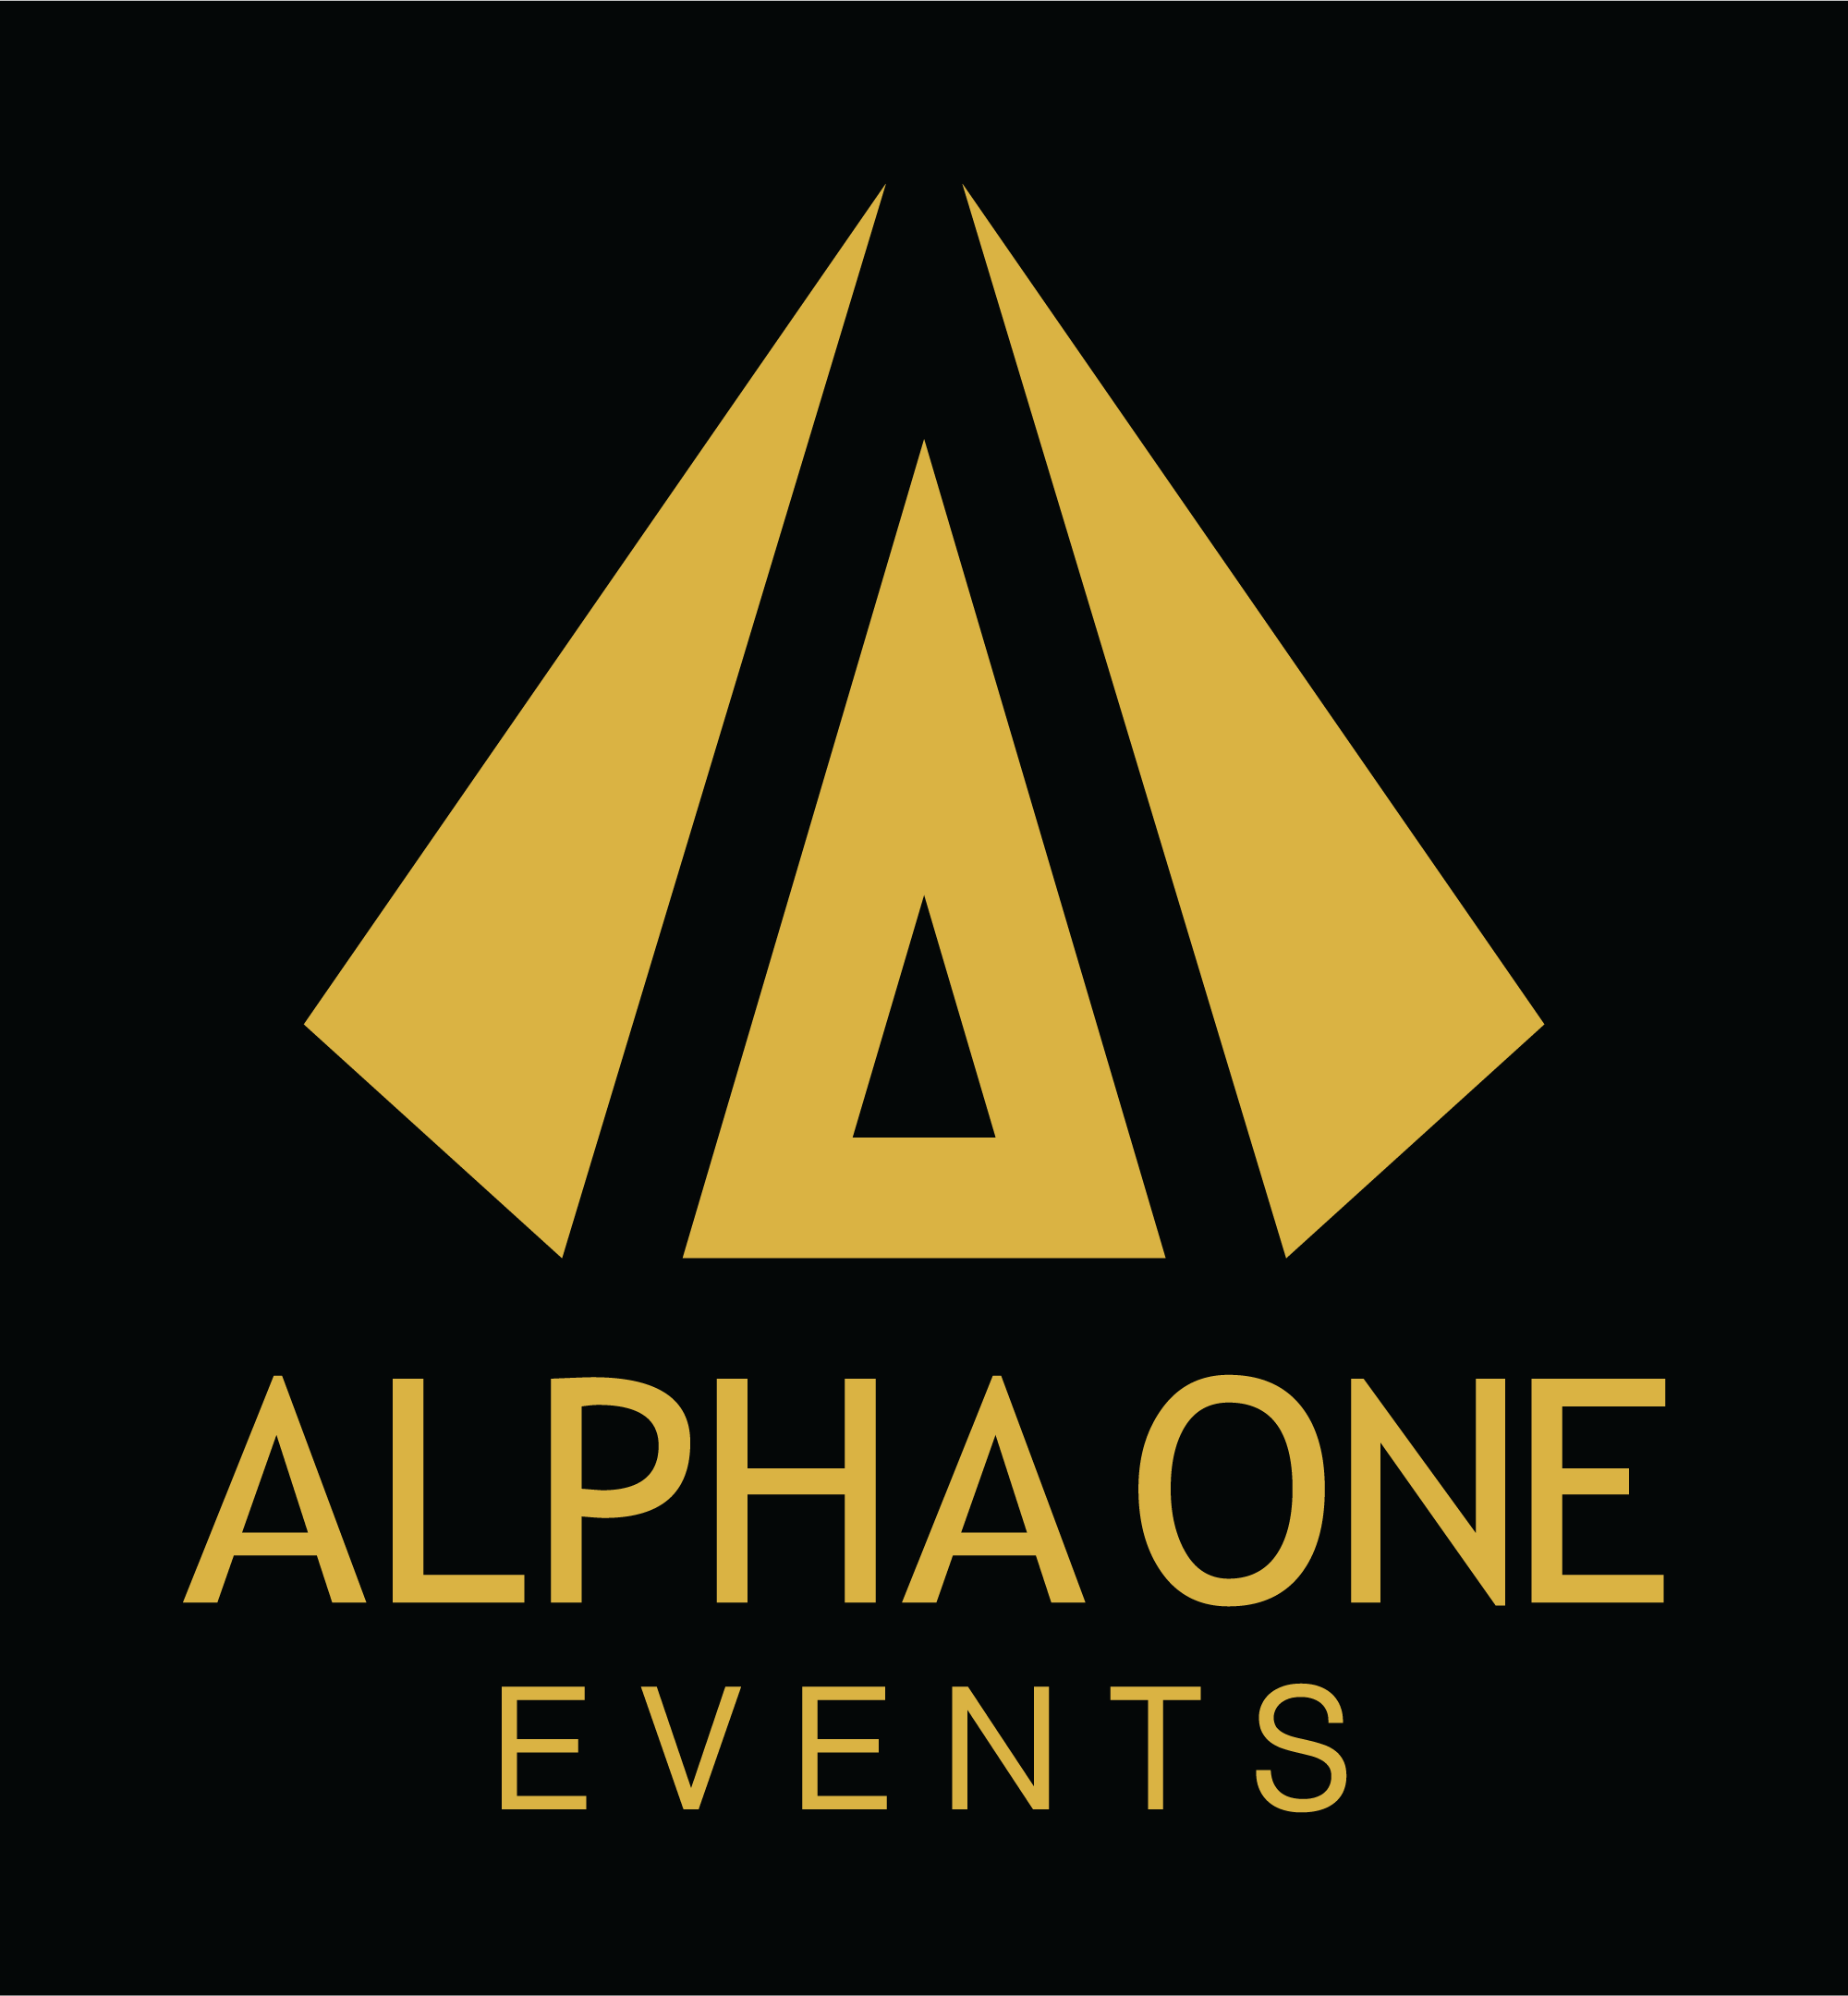 Alpha One Events Announce Xpress Money as Strategic Partner at the Middle East NXT Banking Summit